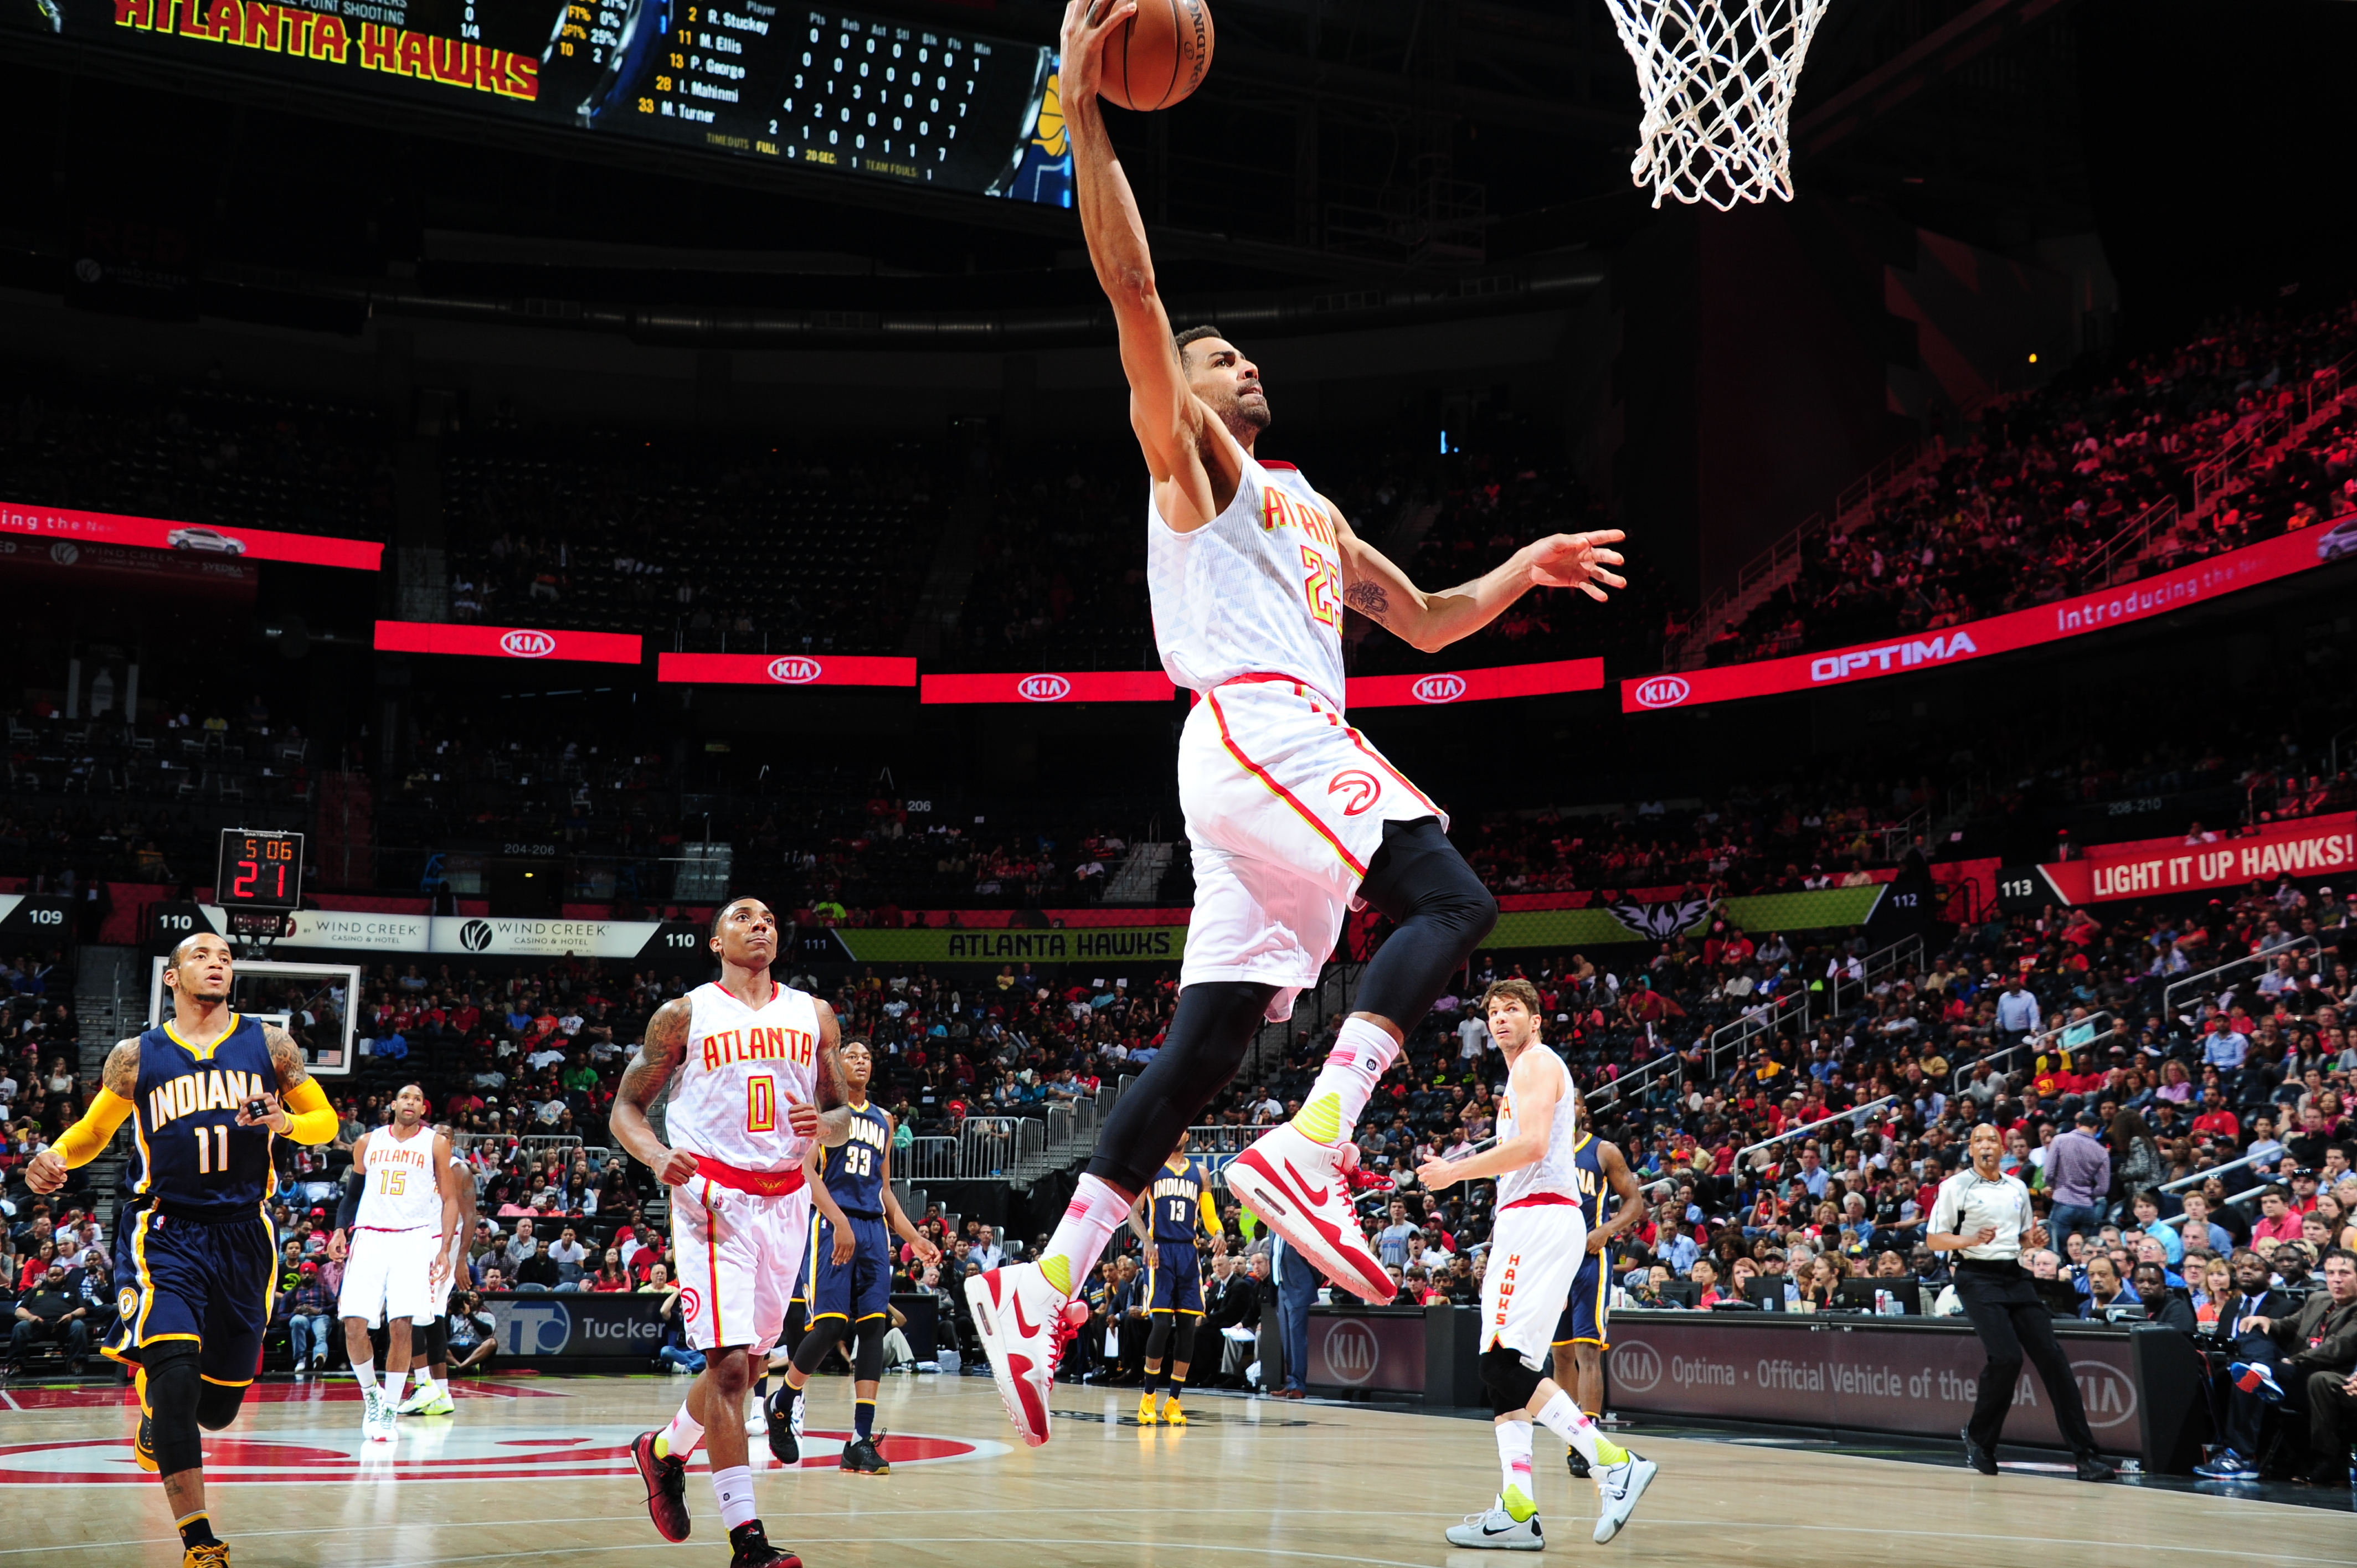 ATLANTA, GA  - MARCH 13: Thabo Sefolosha #25 of the Atlanta Hawks goes for the dunk against the Indiana Pacers during the game on March 13, 2016 at Philips Arena in Atlanta, Georgia. (Photo by Juan Ocampo/NBAE via Getty Images)